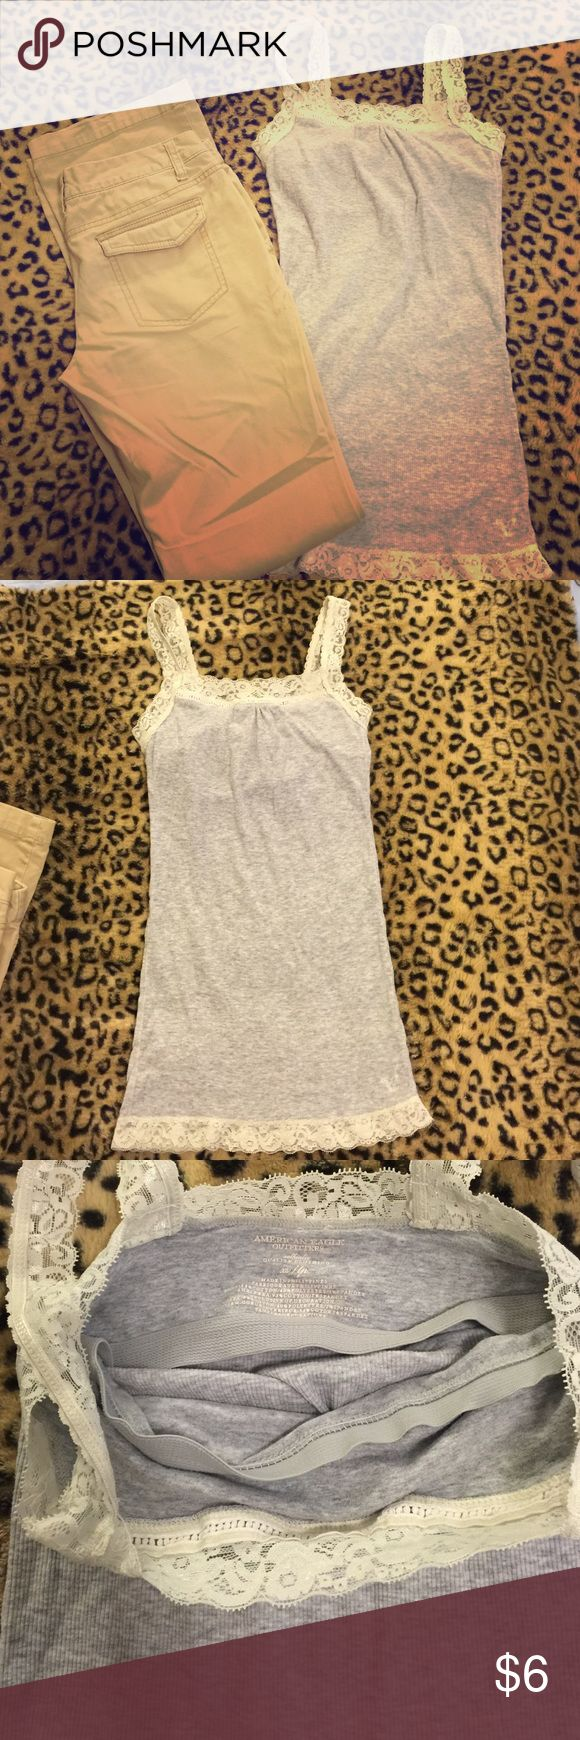 Juniors outfit Mossimo khakis in great condition and American outfitters tank in great condition Mossimo & american outfitters  Pants